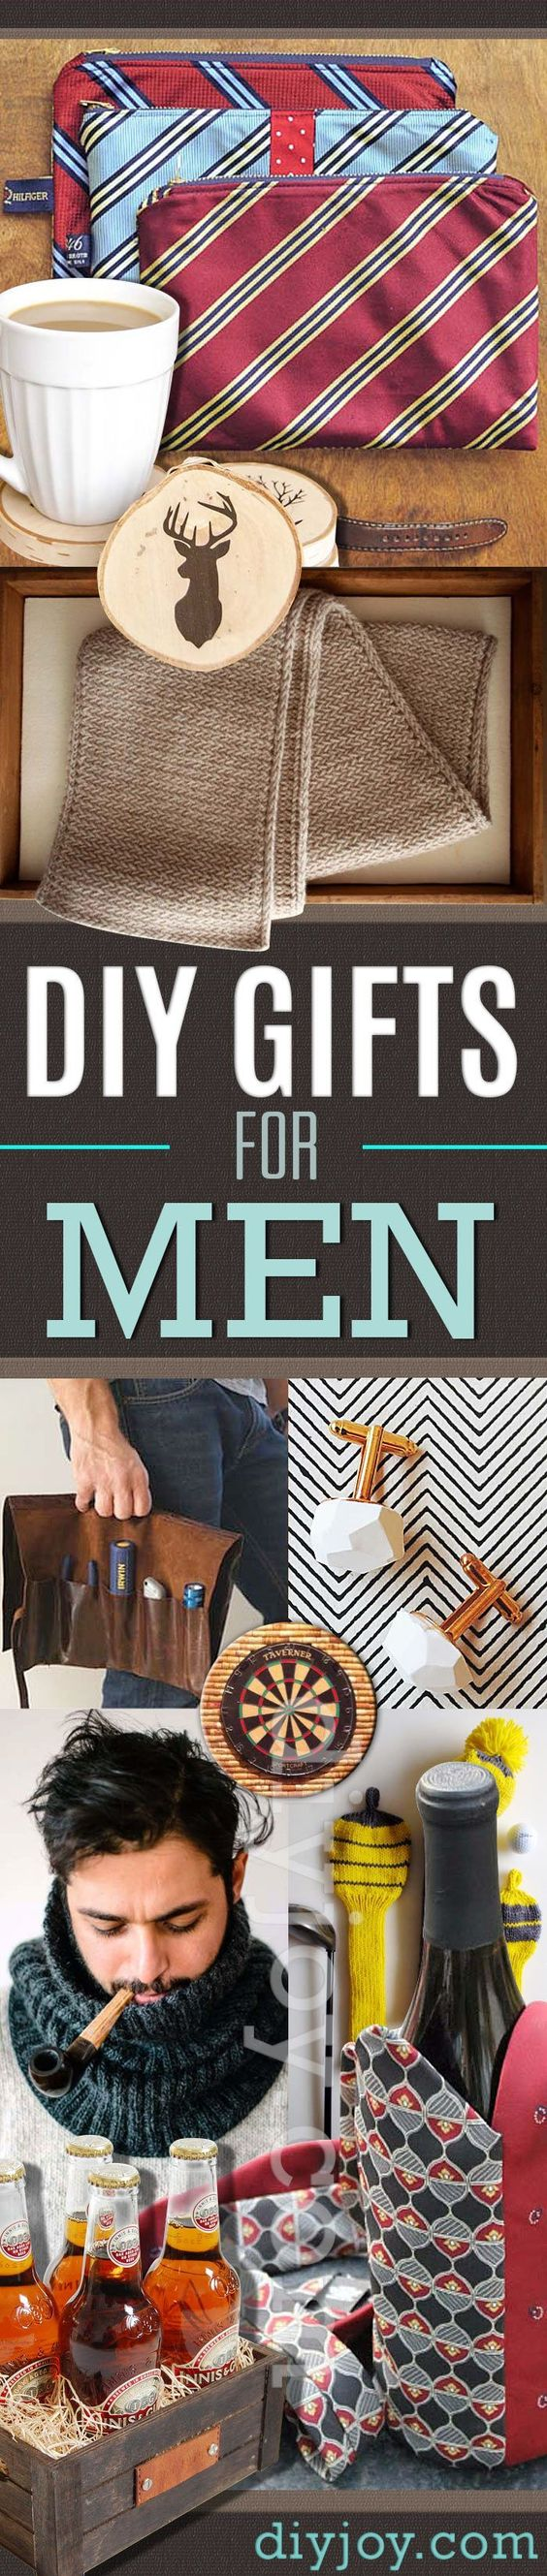 Homemade crafts, Gift for men and Best diy on Pinterest